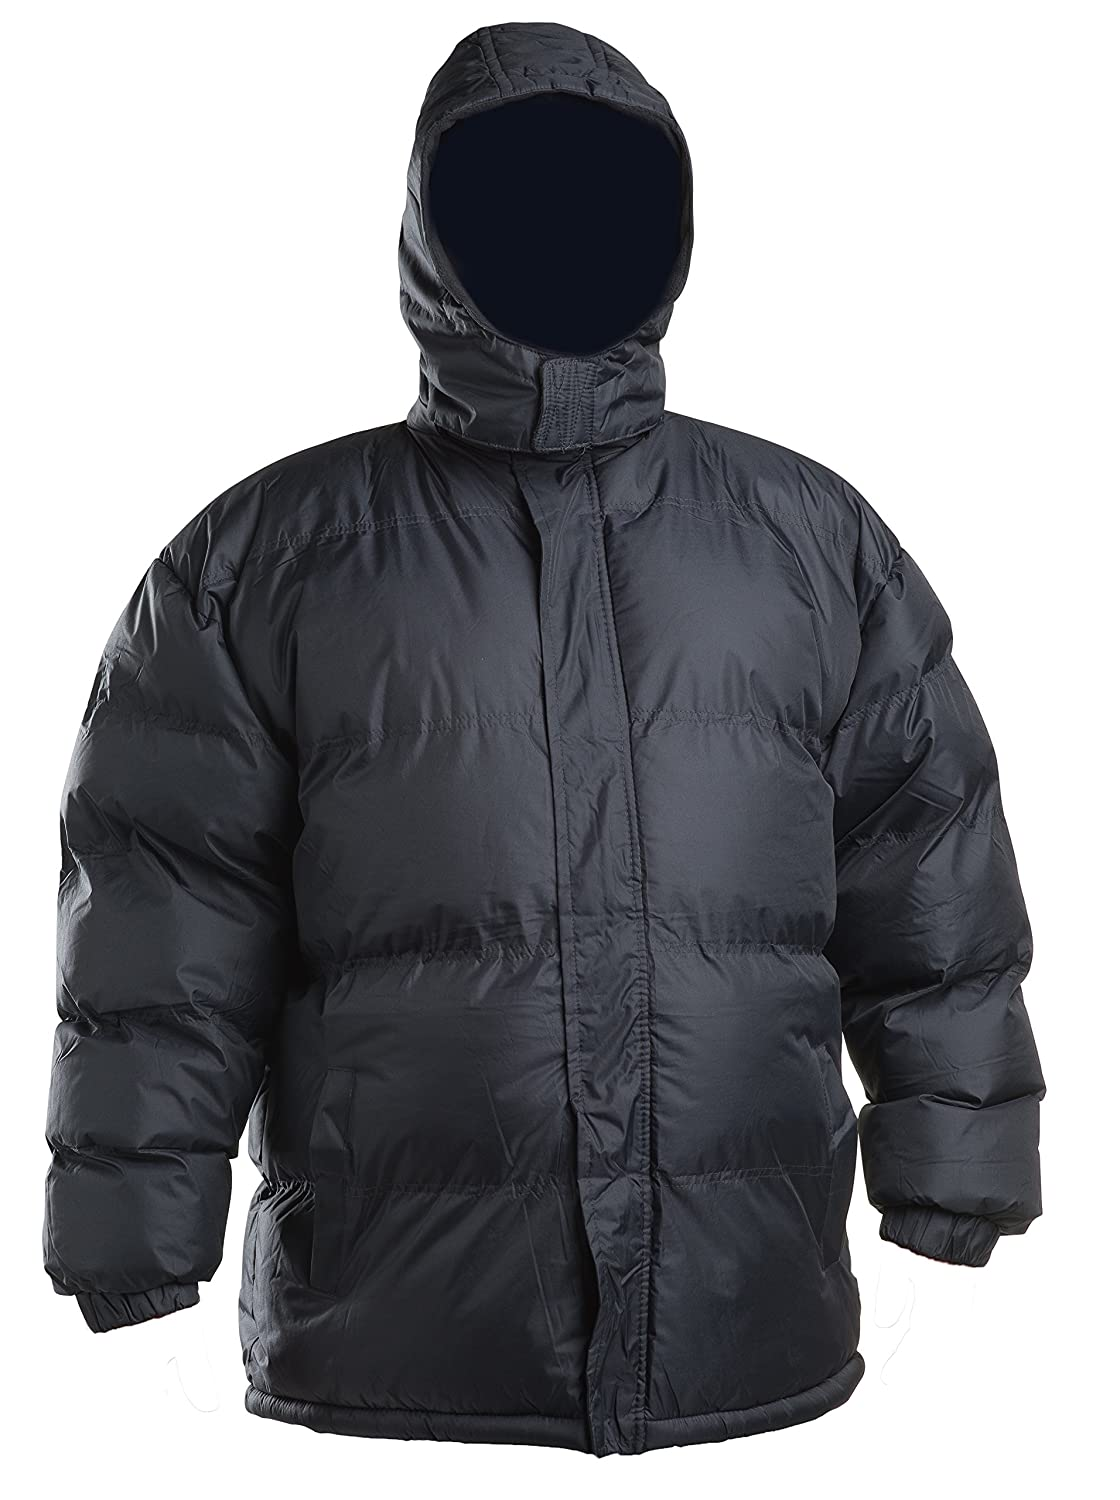 Lion Force Mens' Warm Puffer Coat Heavy Winter Jacket Removable Hood Polar Fleece Lining 6060M-$S-6X